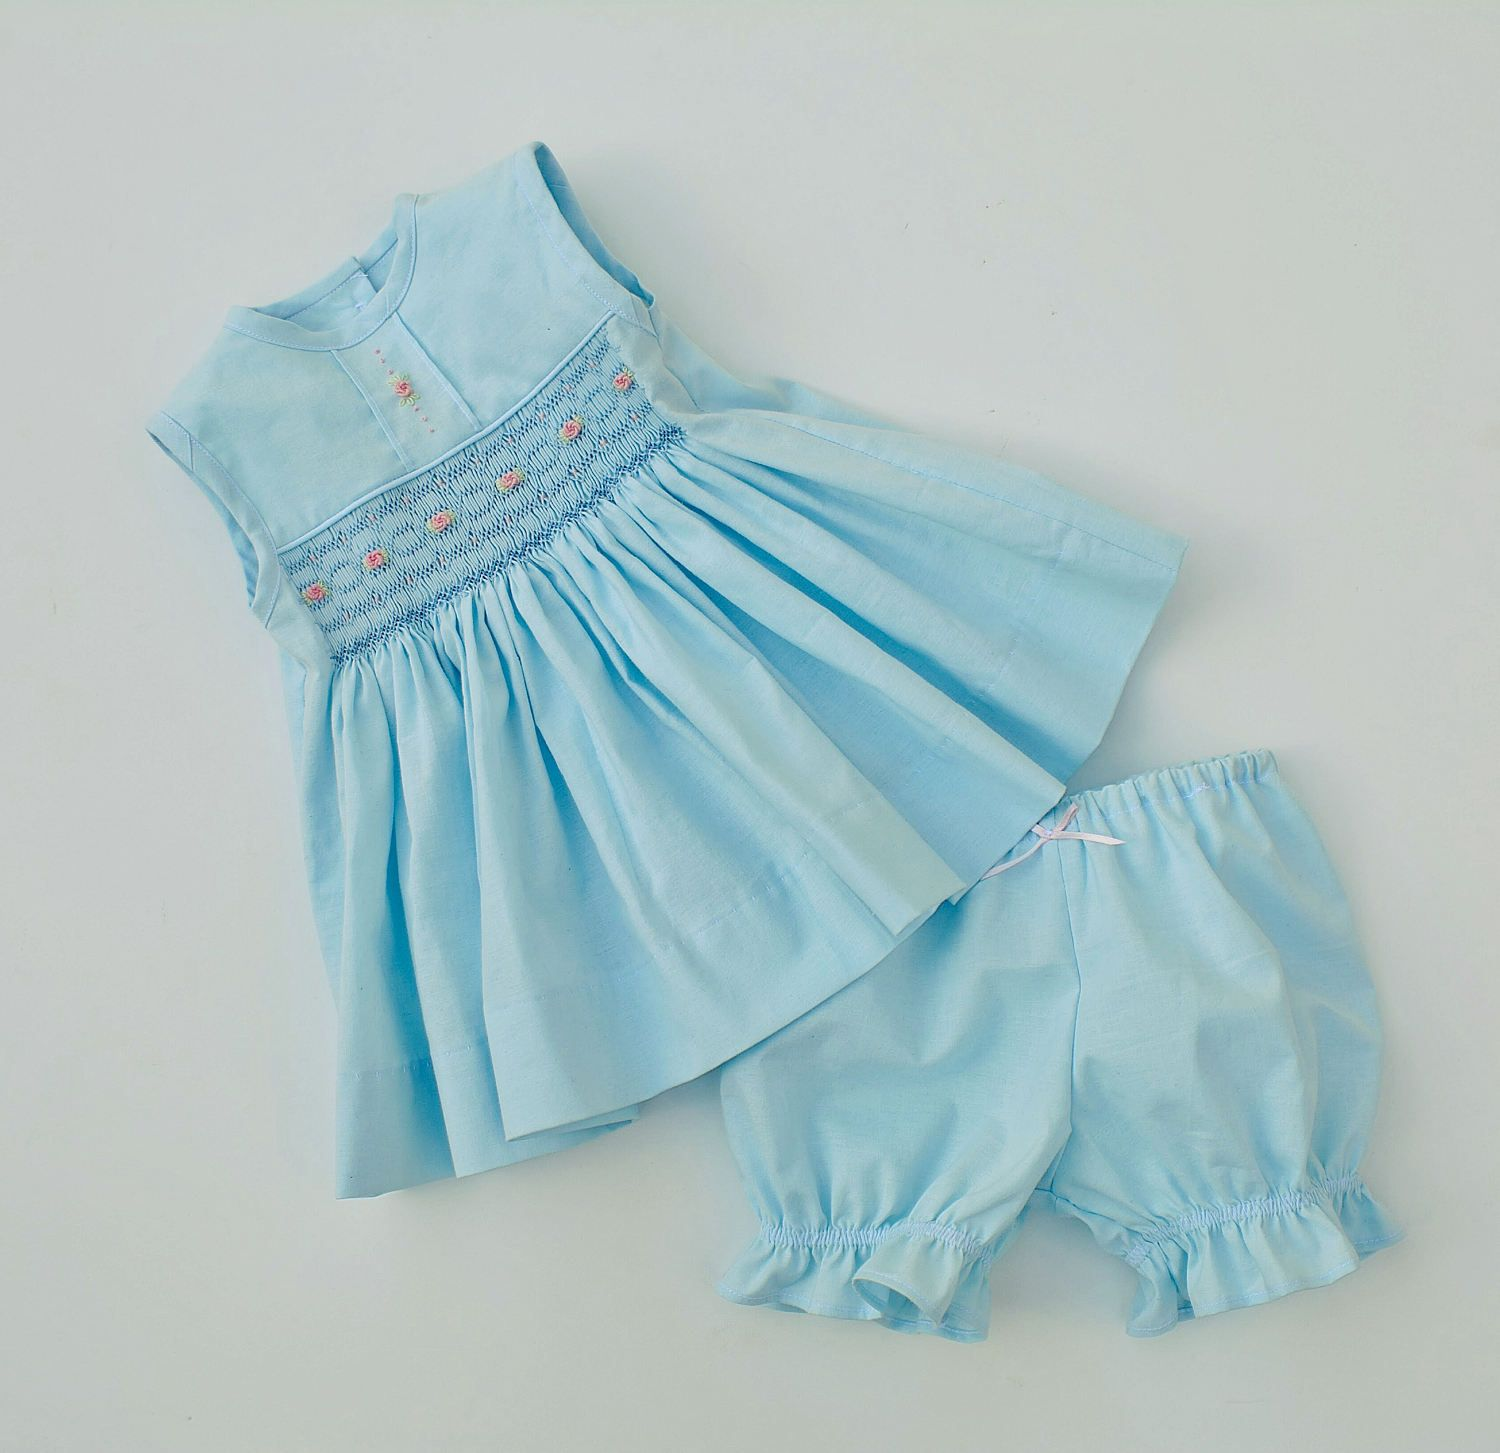 812c32126fc Pale blue smocked dress size 3-6 months with bloomers. Geometric smocking  features pink bullion roses across the front. by TheSmockingMomma on Etsy